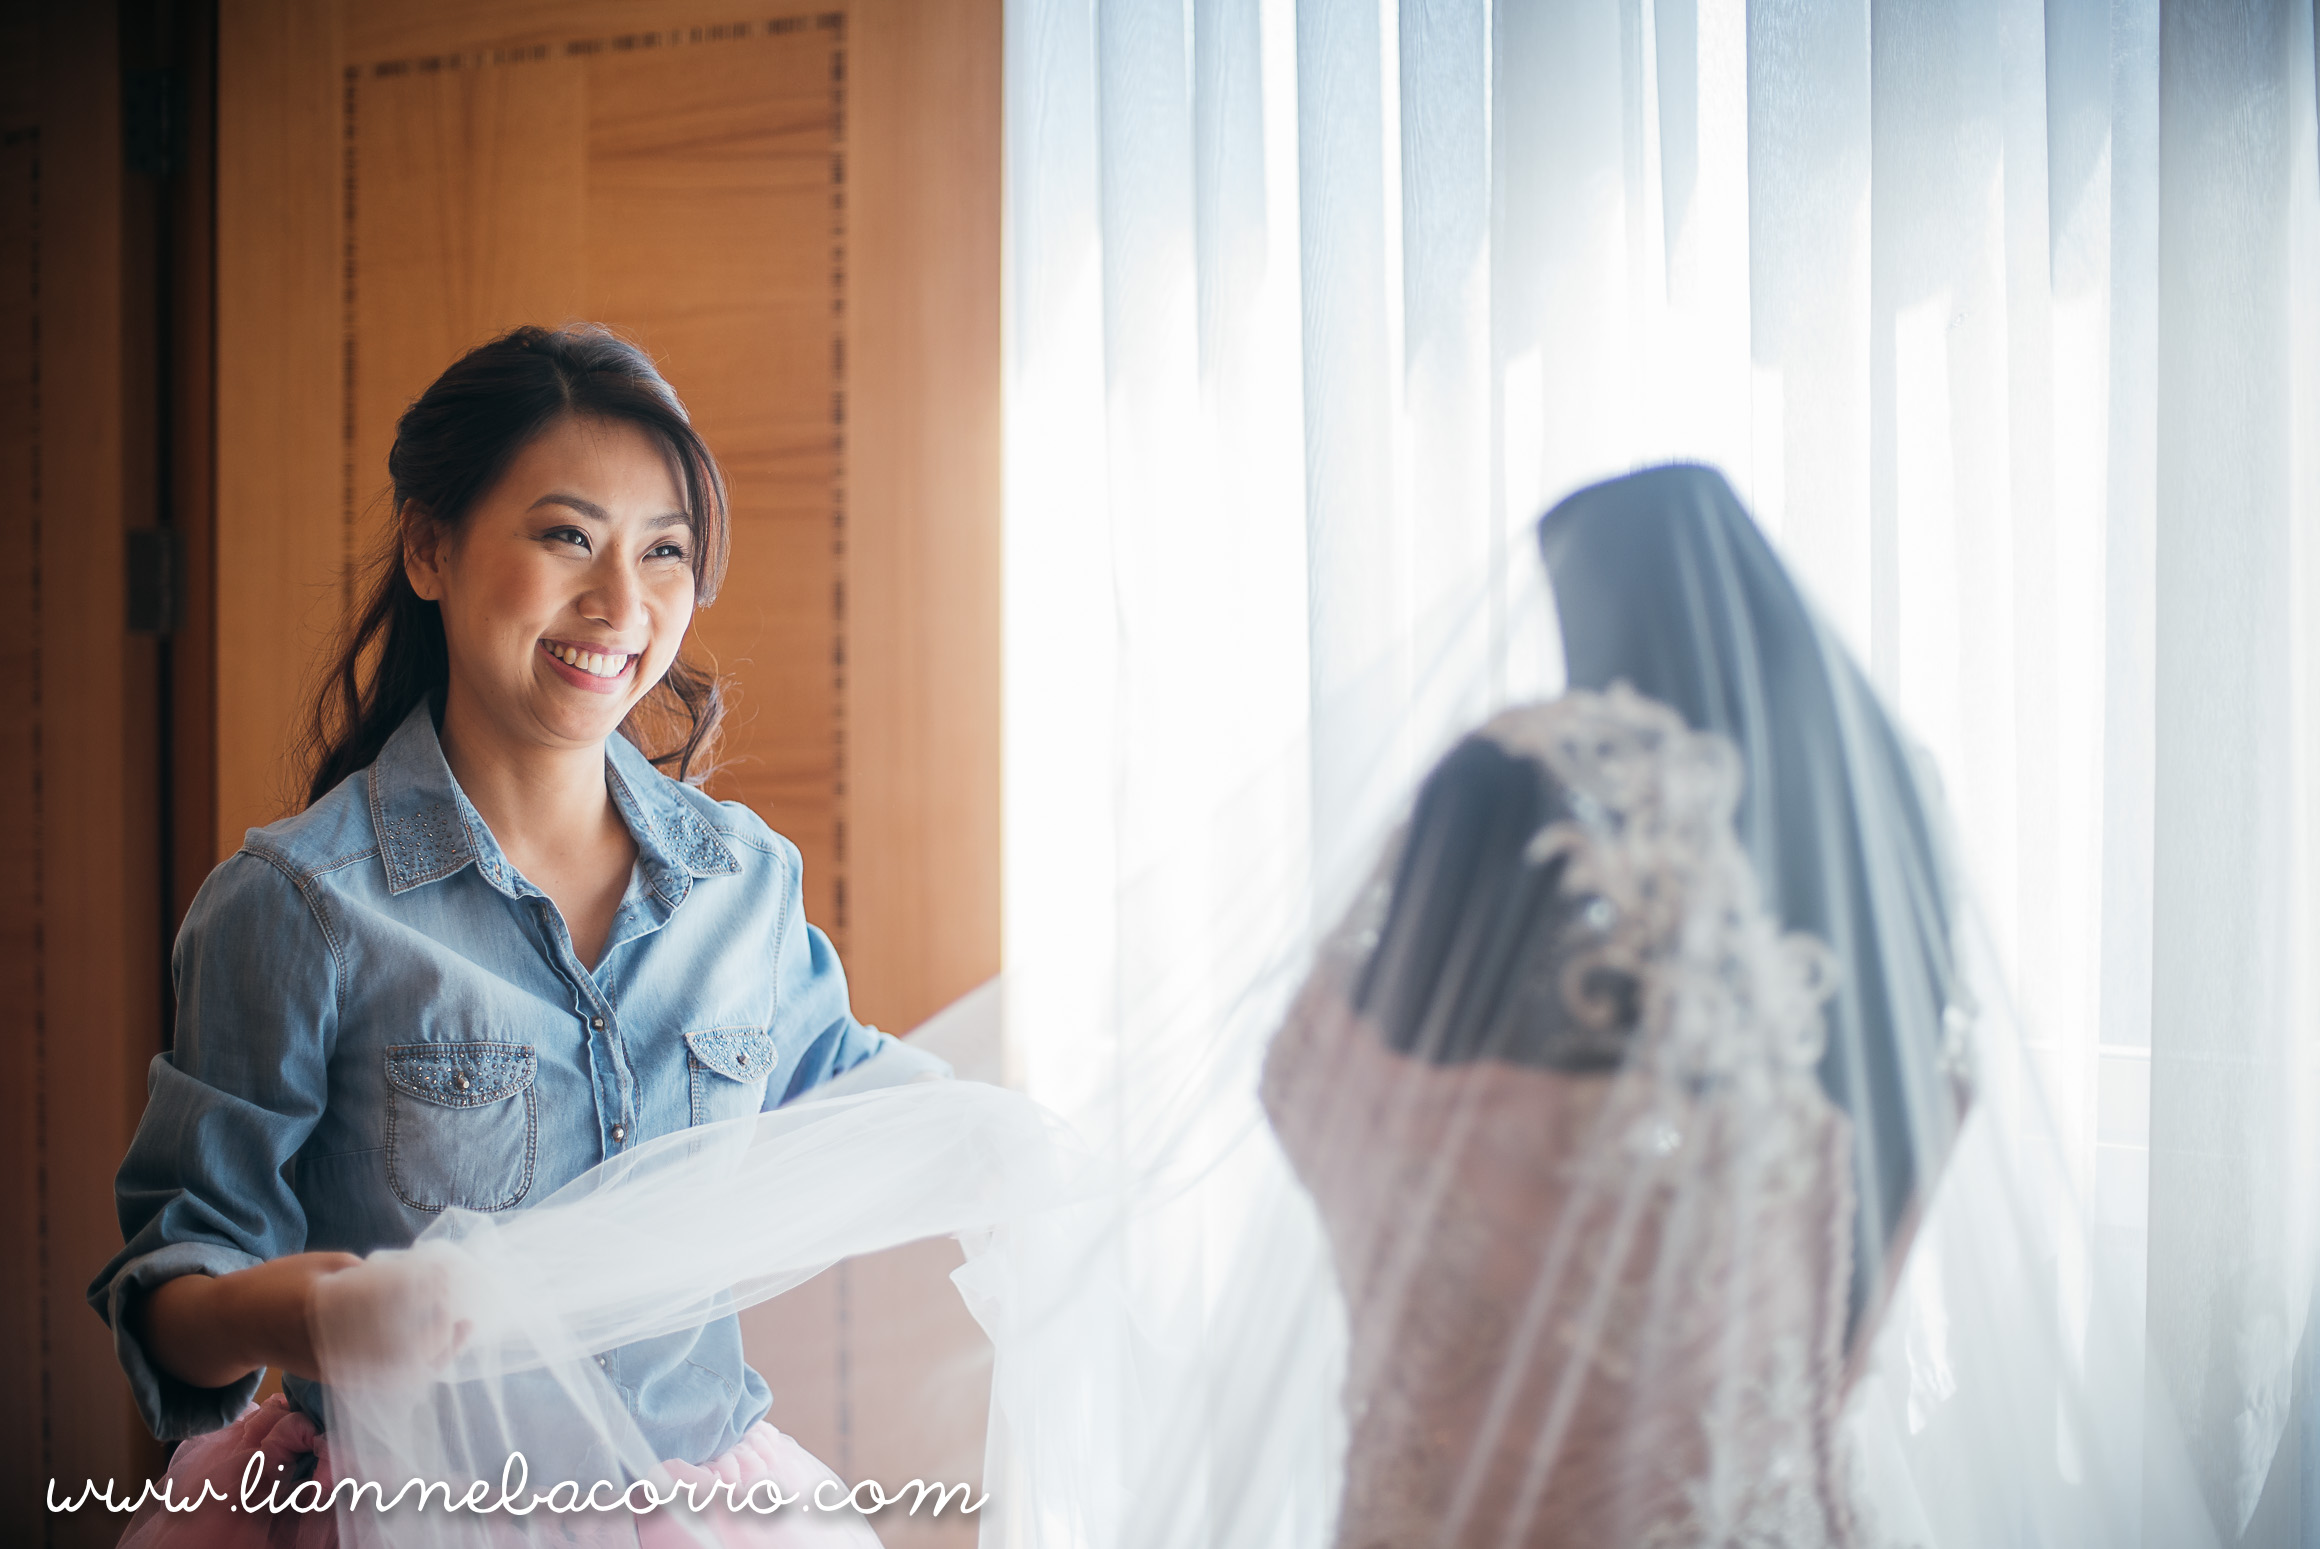 Dem and Kyra - Wedding Photography by Lianne Bacorro - Dan Rivera Photography-17